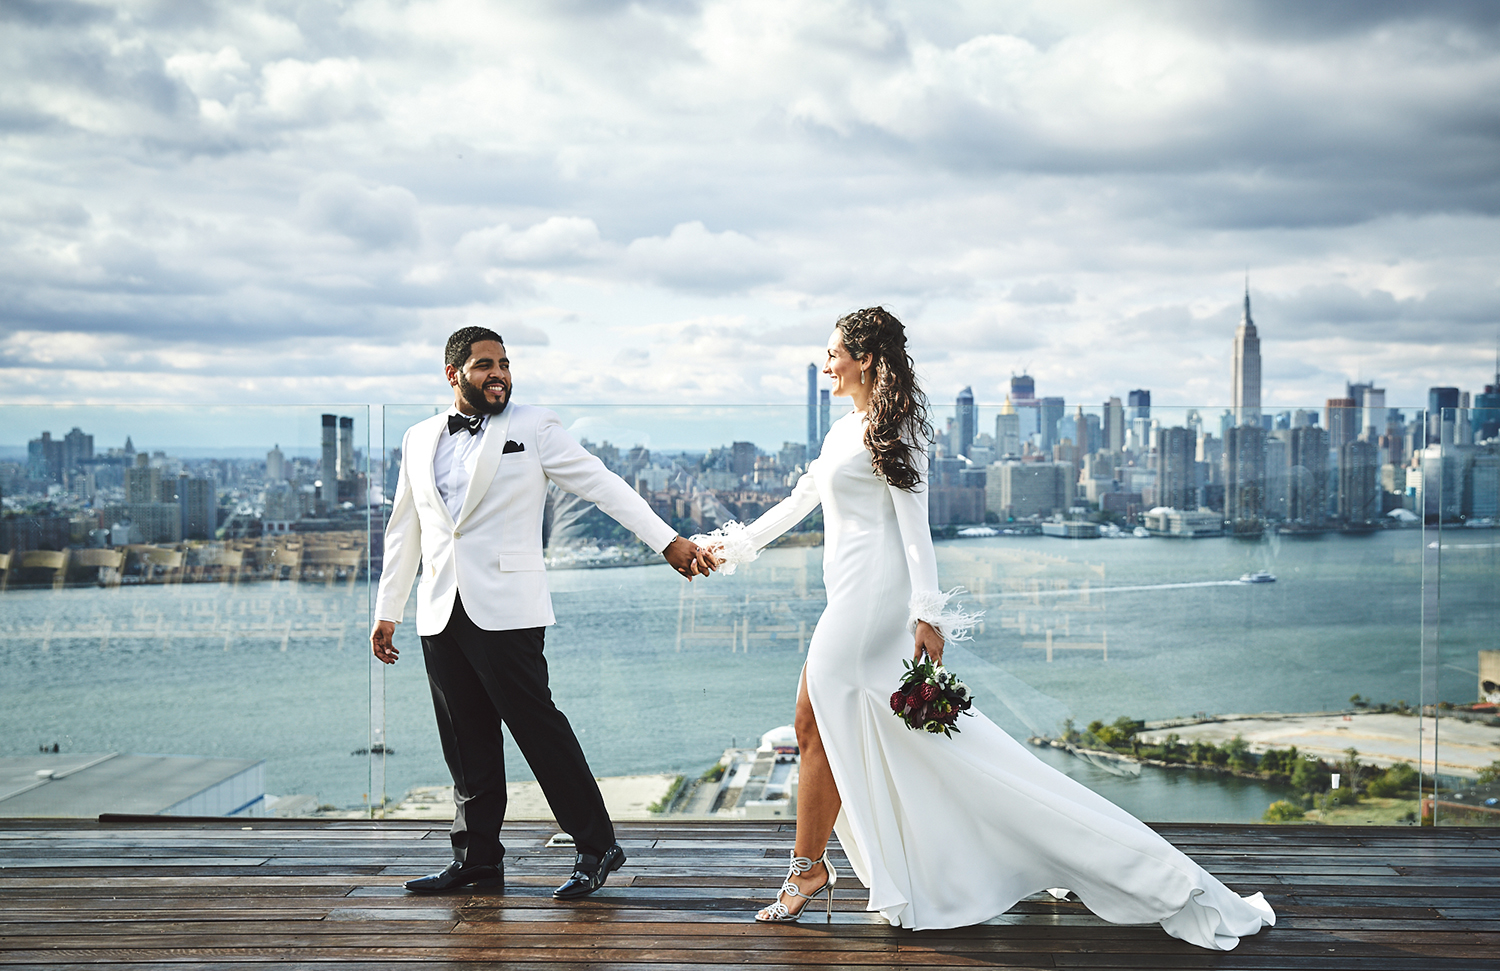 170930_WilliamValeWeddingPhotography_BrooklynWeddingPhotographer_By_BriJohnsonWeddings_0080.jpg